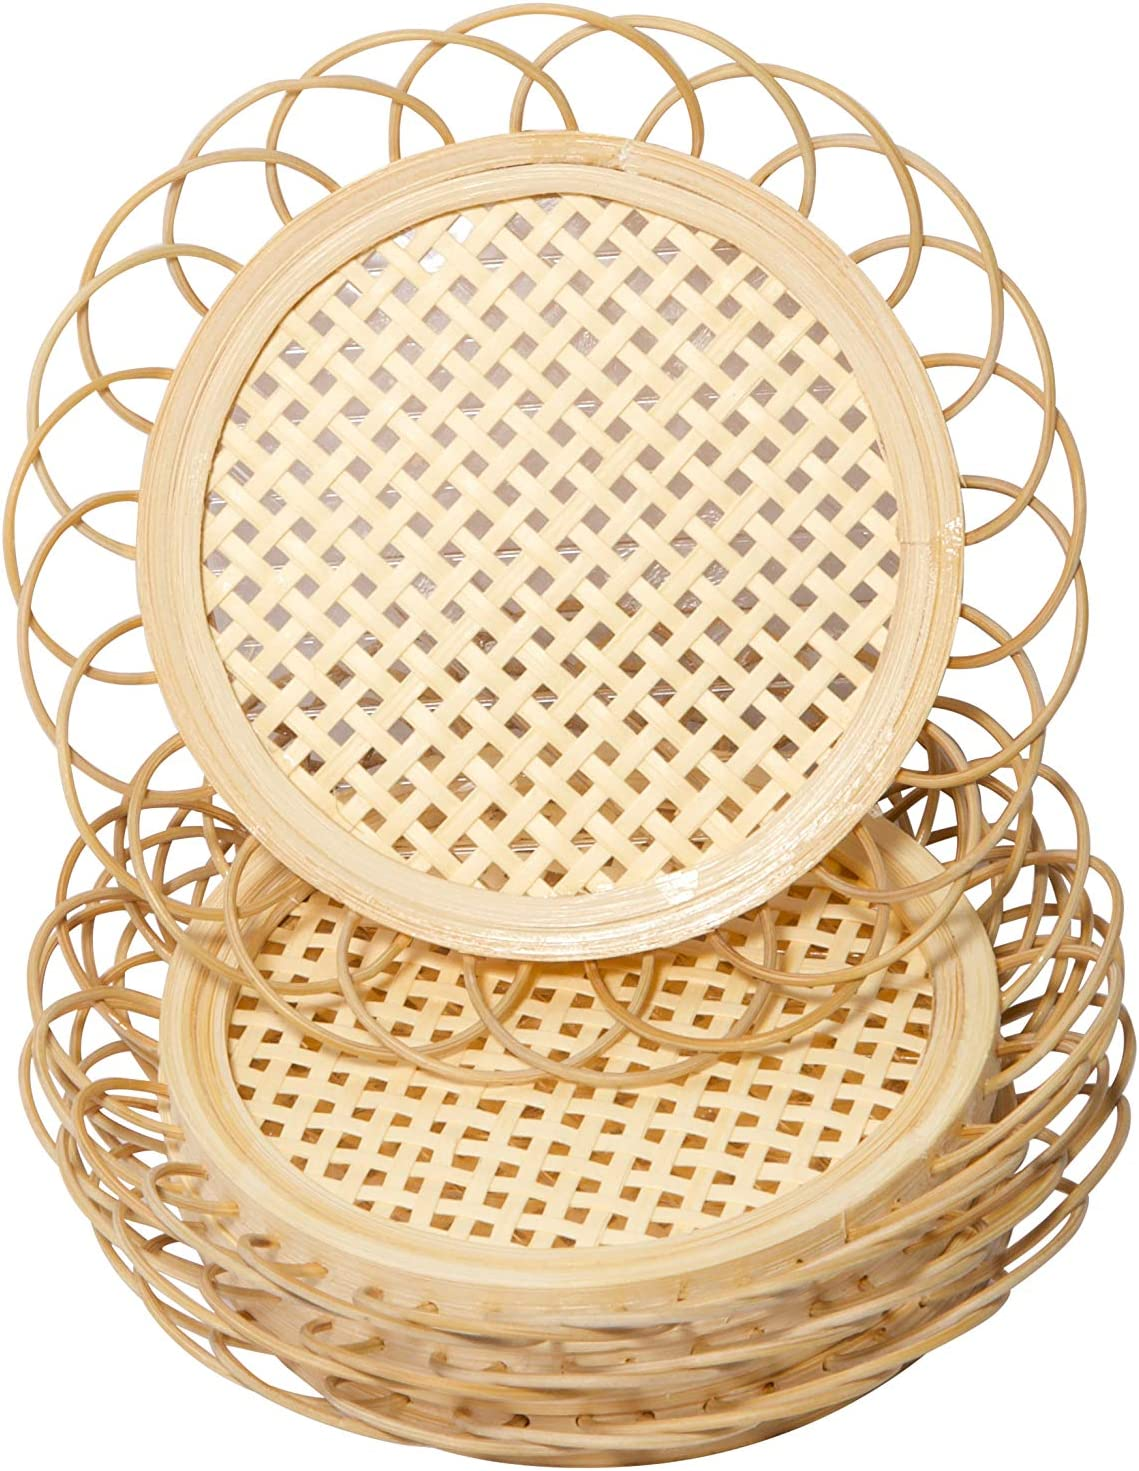 SoBoho Natural Handmade Woven Cottagecore Bamboo Rattan Coasters for Drinks - Neutral Minimalist Wicker Boho Indie Style Coasters for Home Kitchen Living Room Coffee Table Decor Accessories - Set of 4